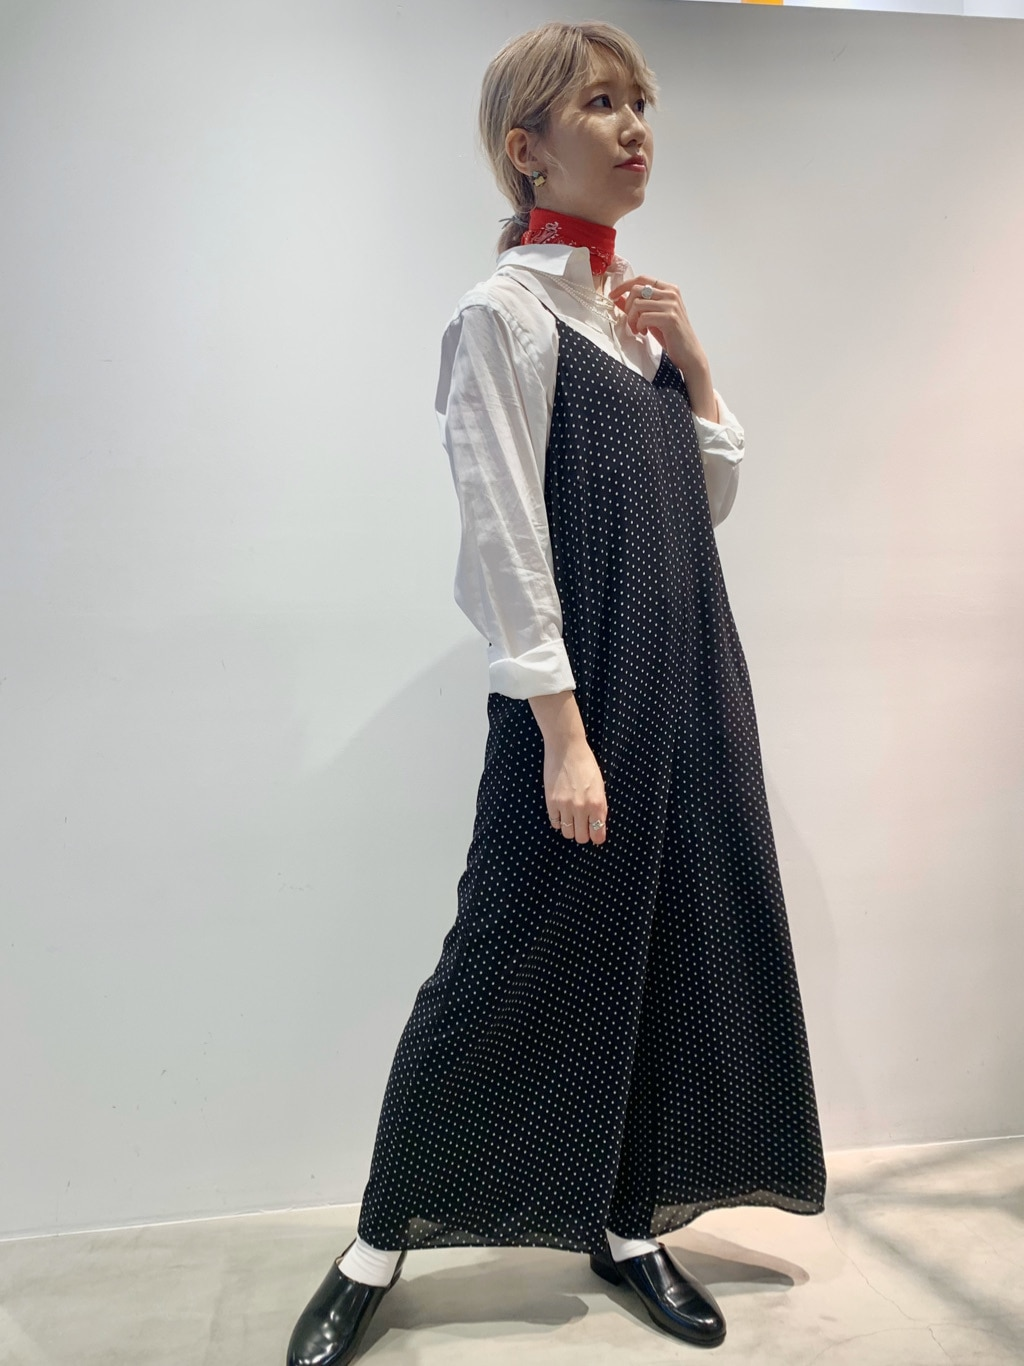 Dot and Stripes CHILD WOMAN ラフォーレ原宿 身長:160cm 2020.09.03